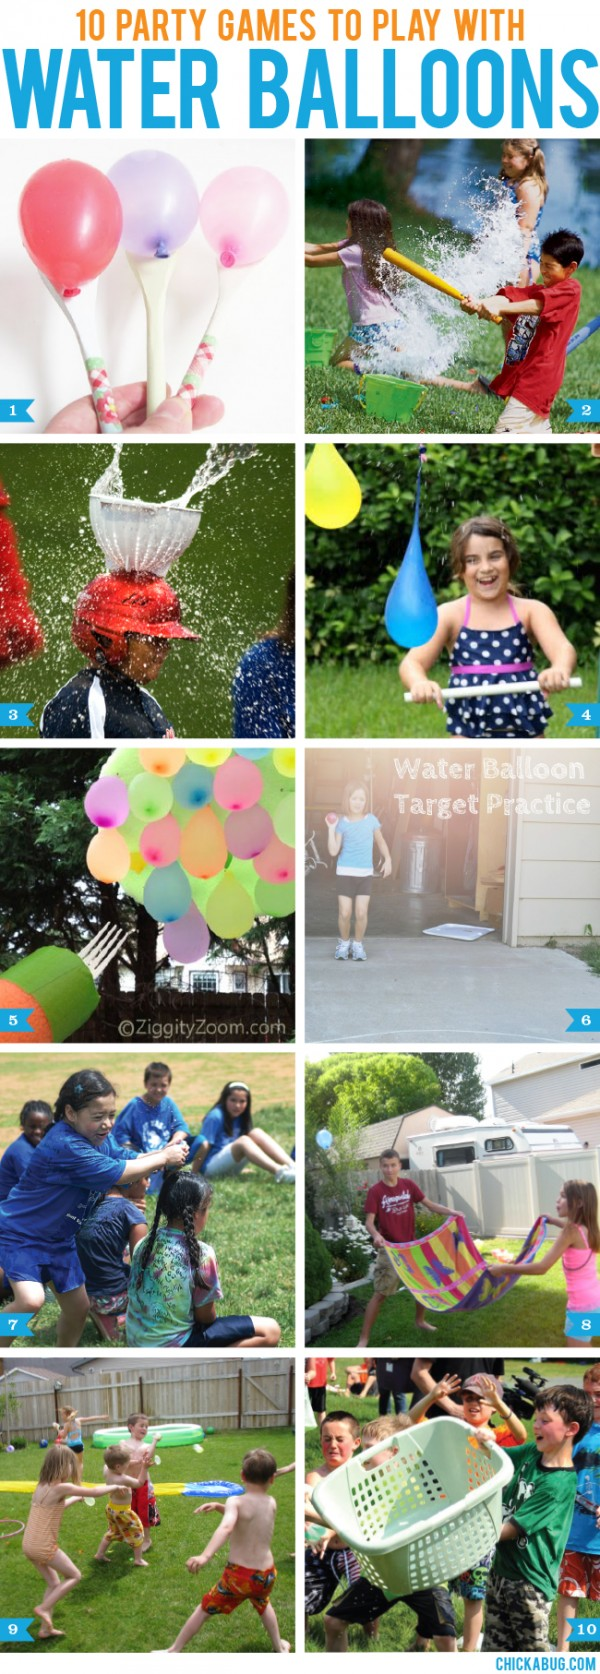 10 party games to play with water balloons party ideas for A bathroom i can play baseball in